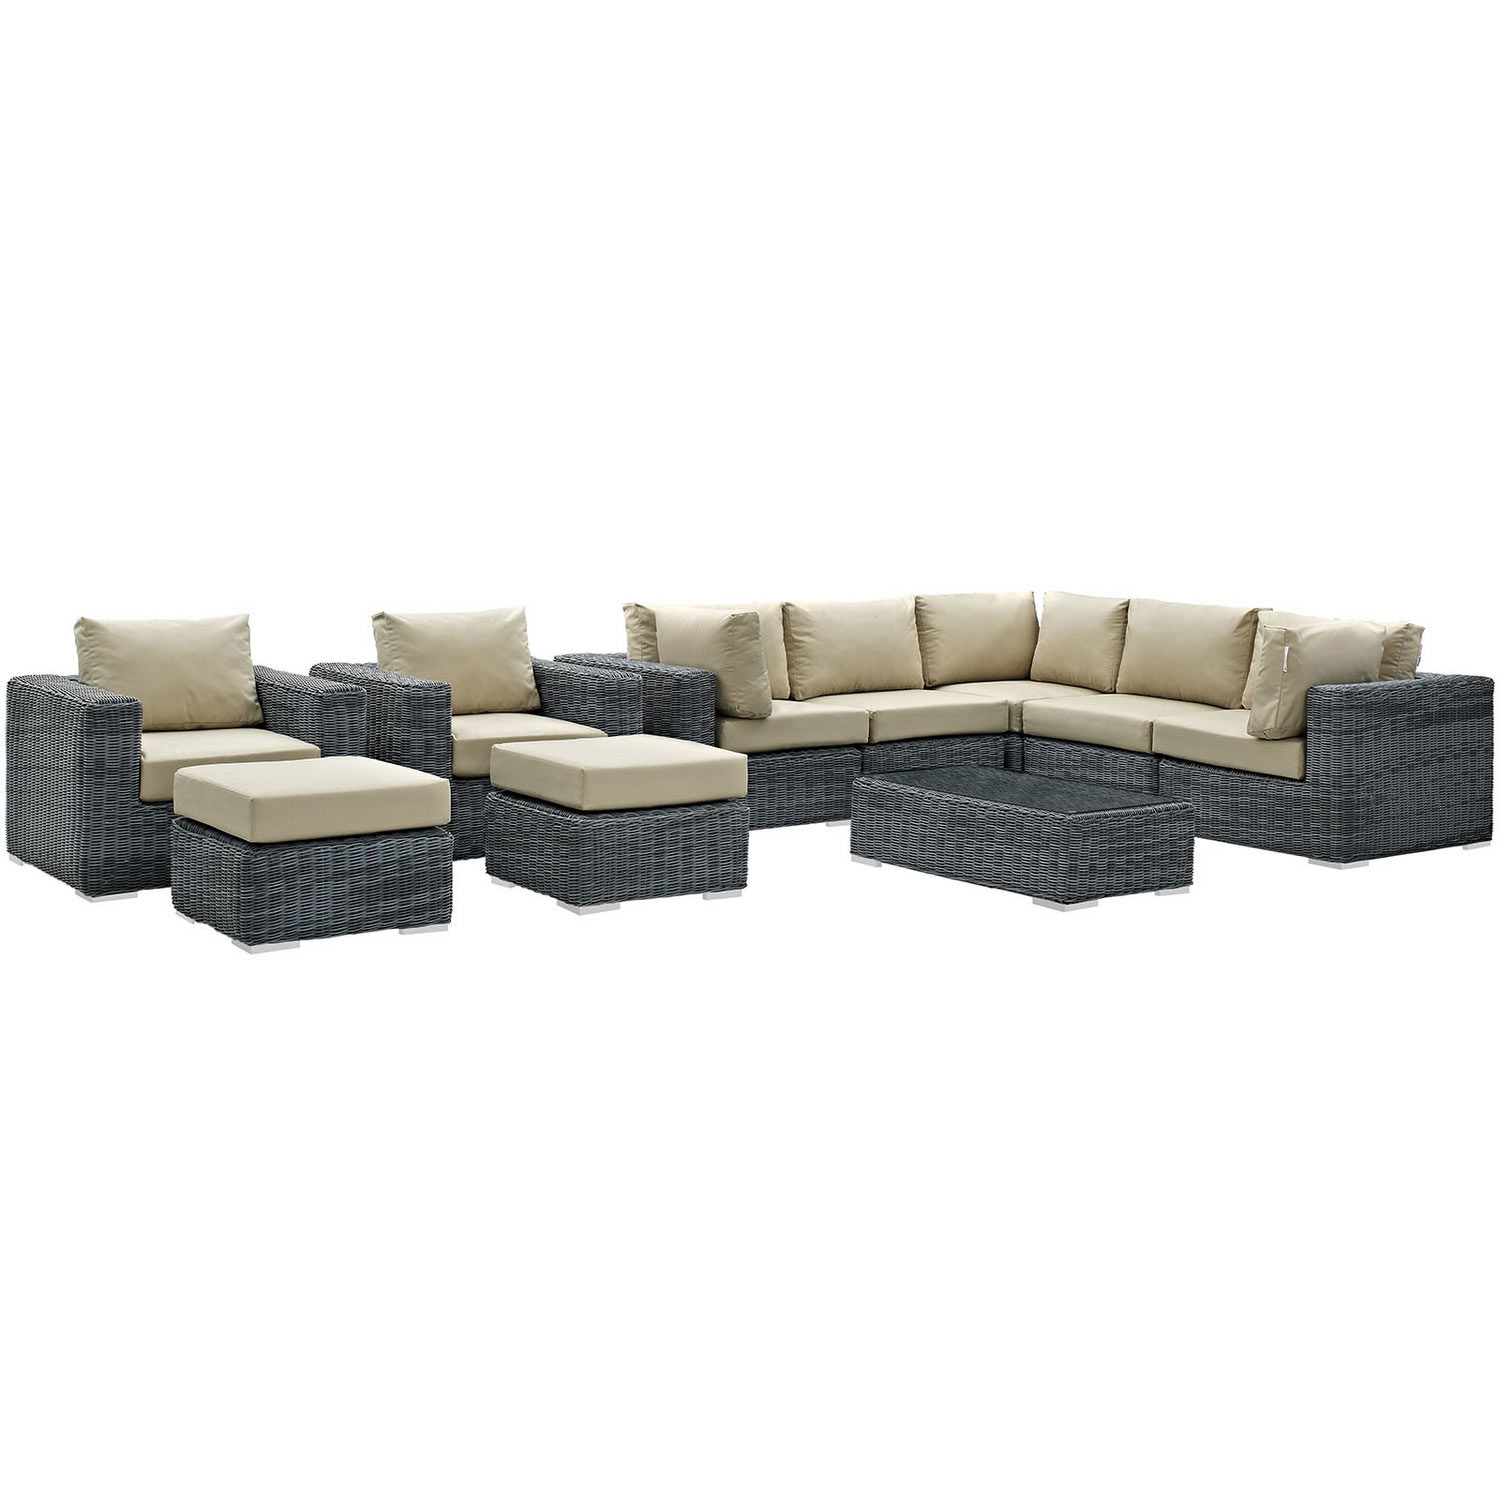 Modway Summon 10 Piece Outdoor Patio Sunbrella Sectional Set - Canvas Antique Beige